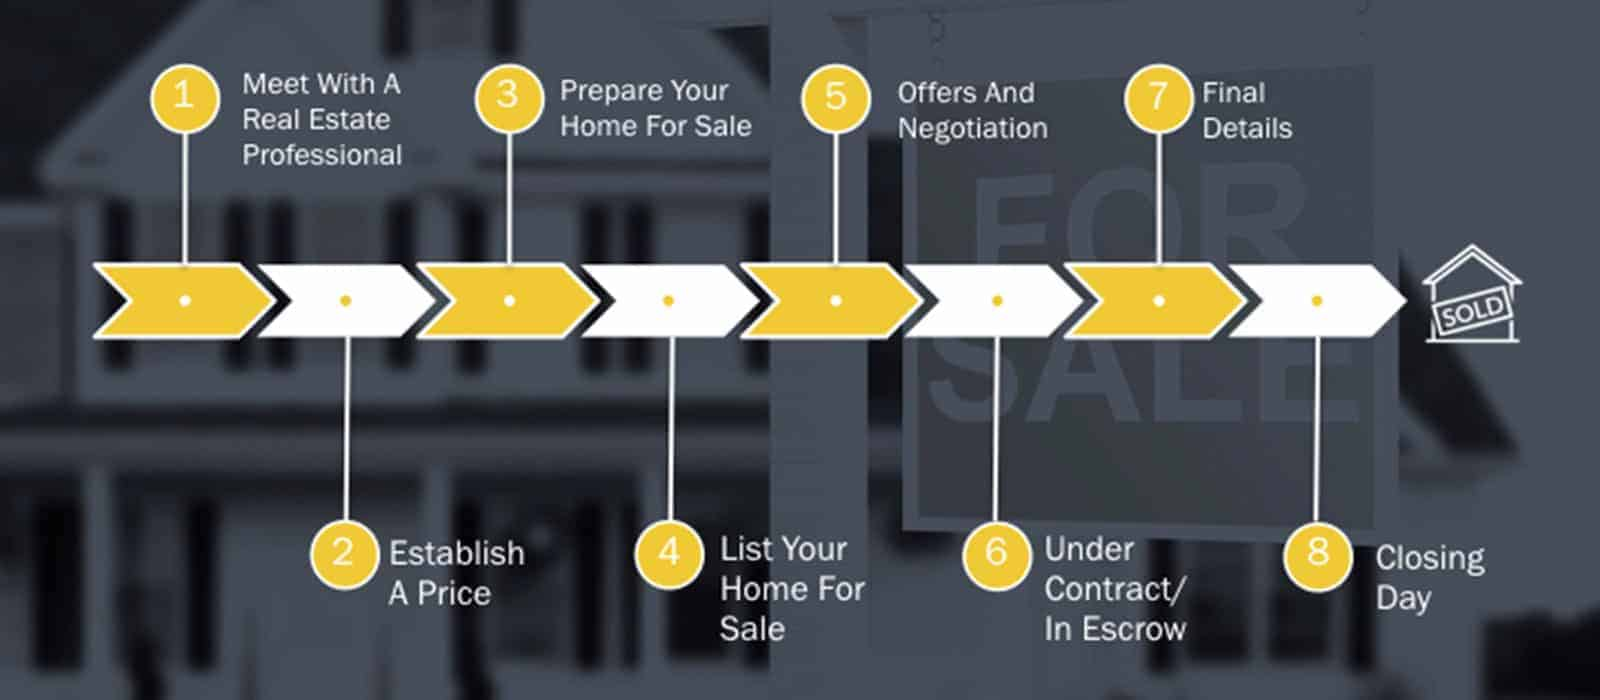 Sell Your Home, Seller's Road Map